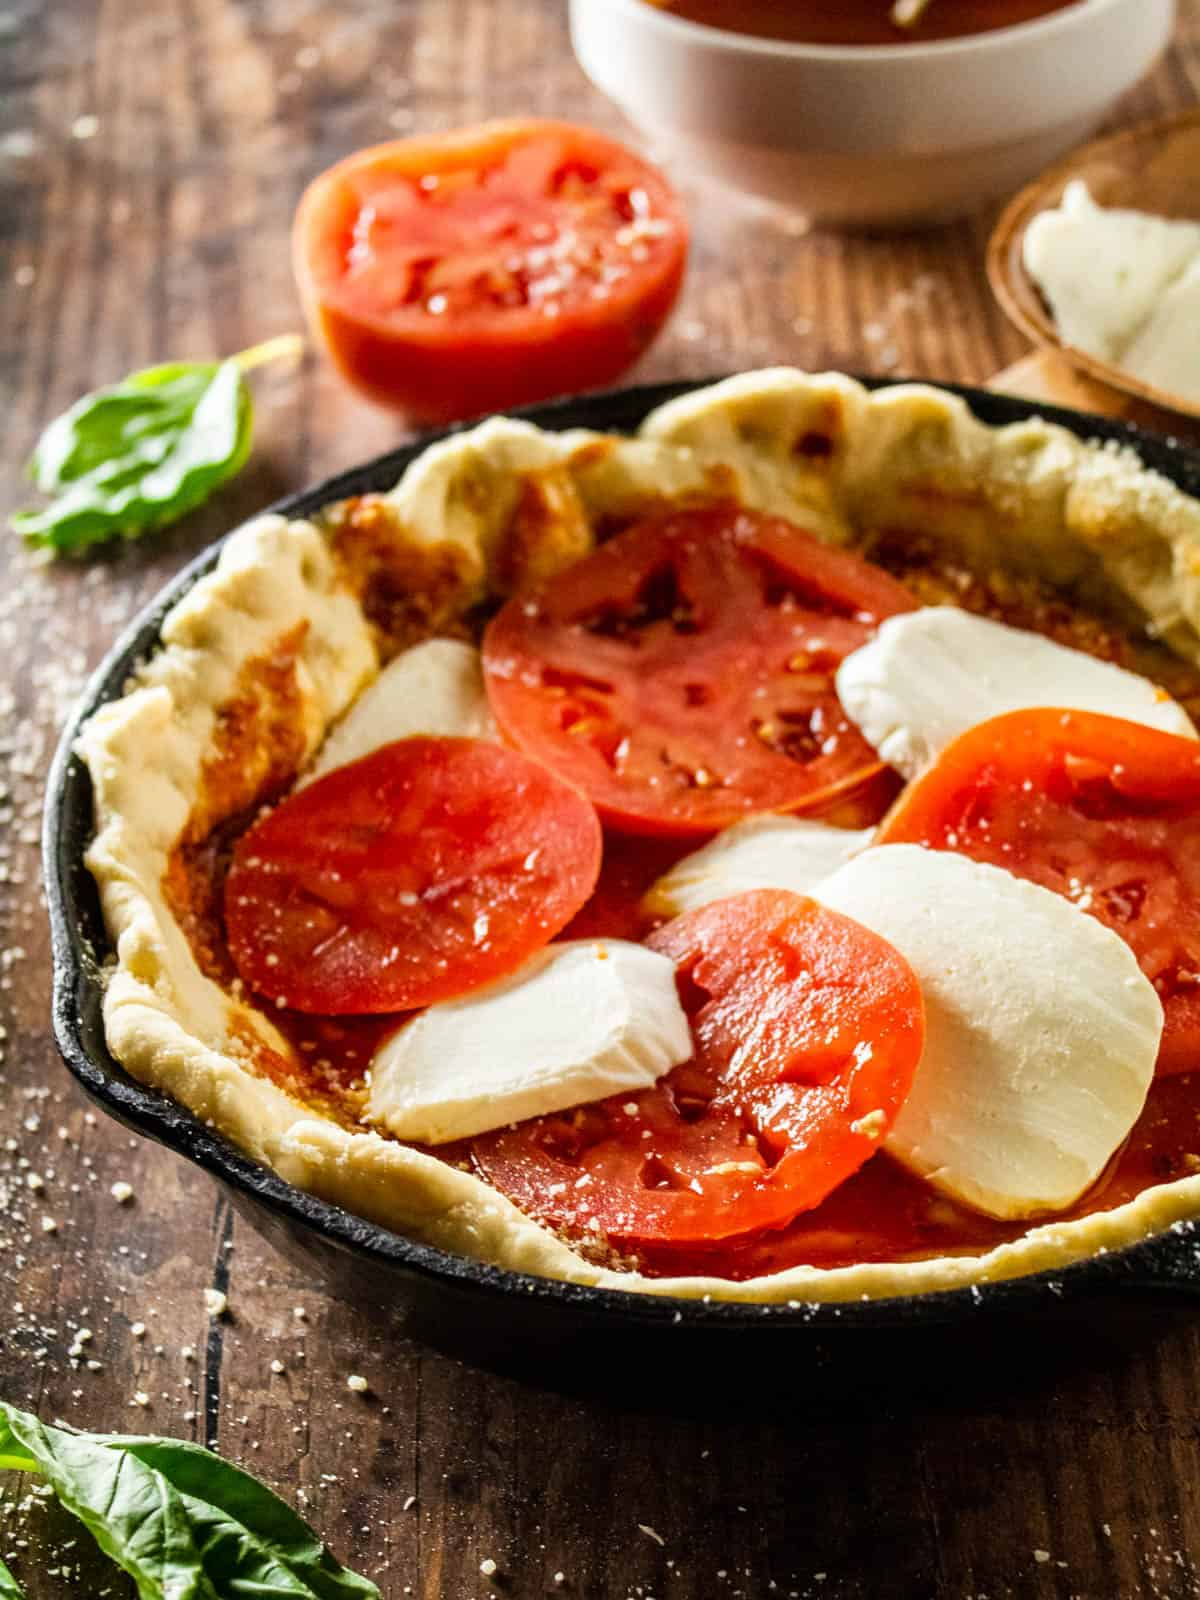 sliced fresh mozzarella and tomatoes with marinara on pizza dough in a skillet